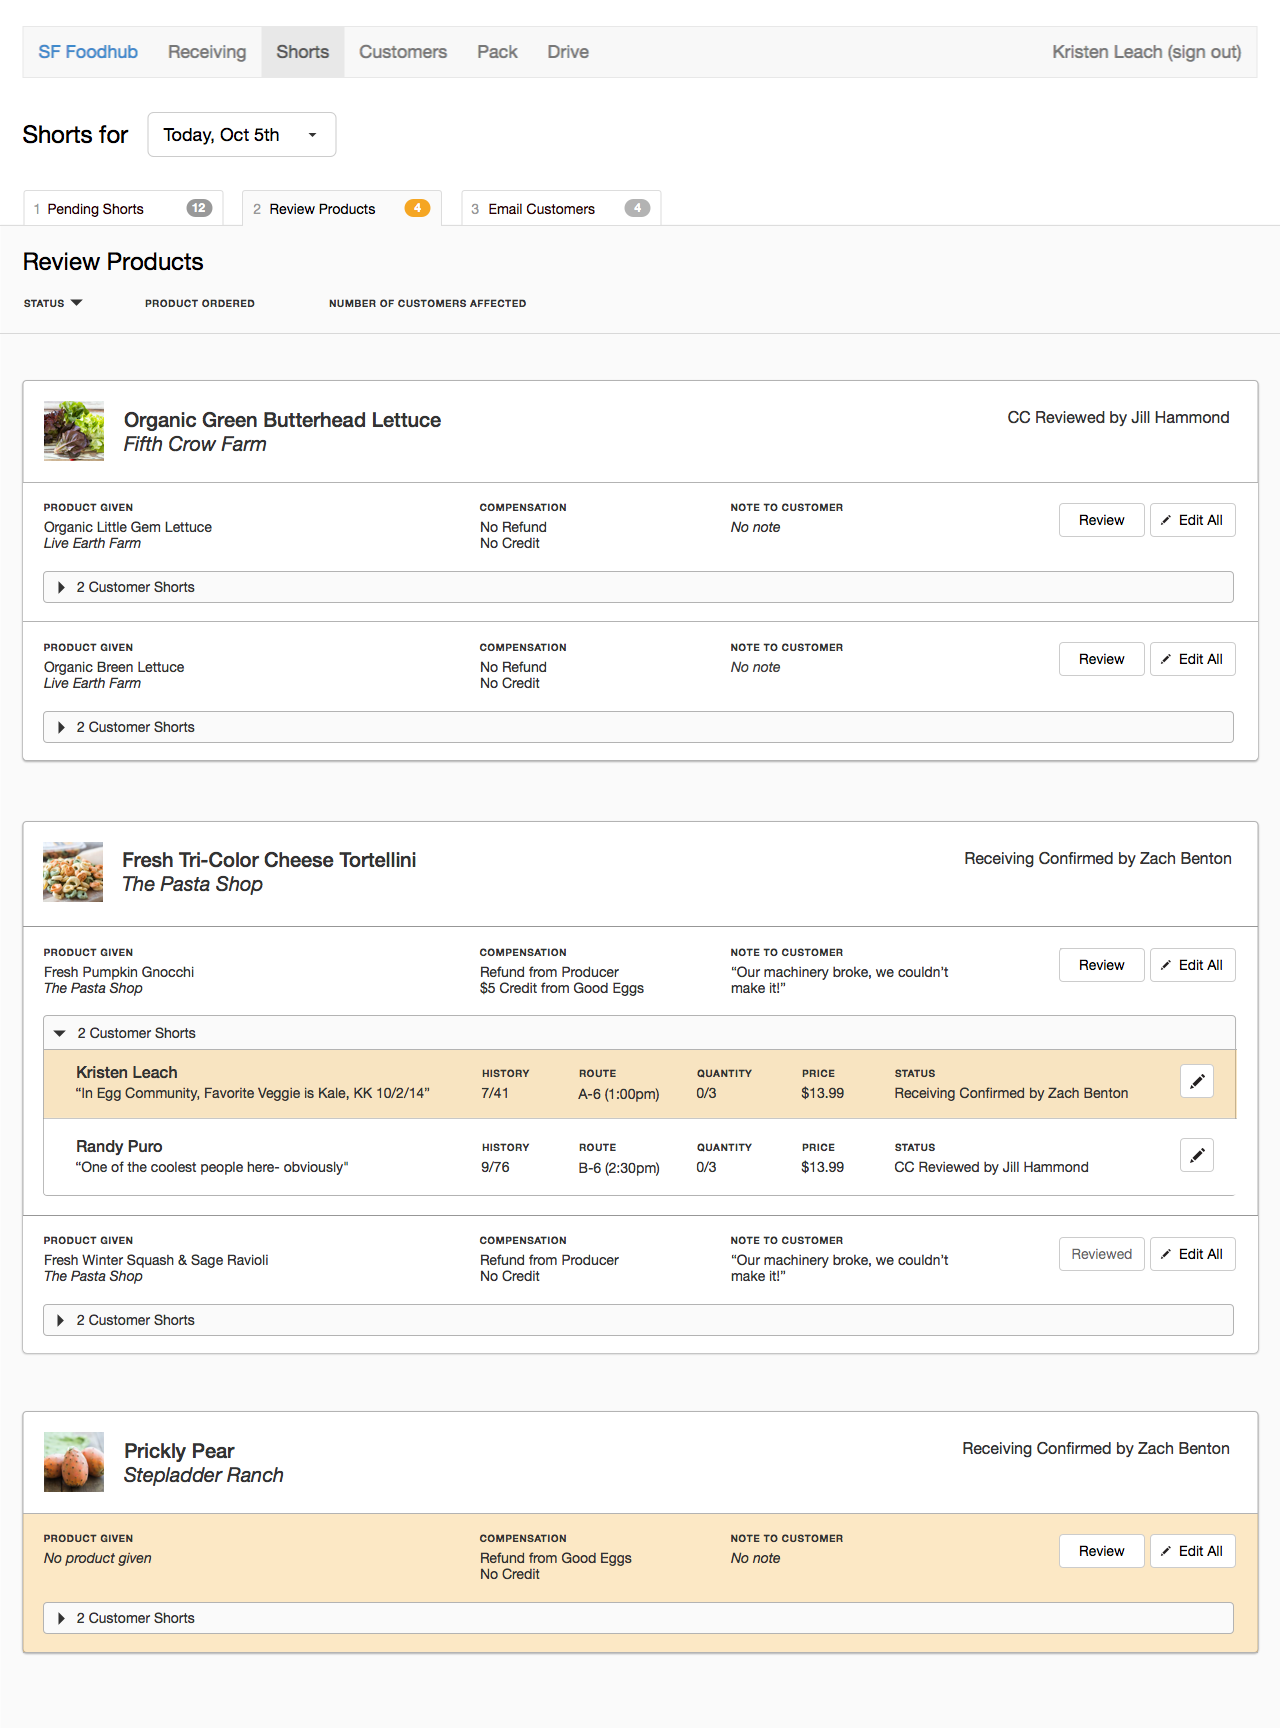 Final interface design for Phase 1 product page